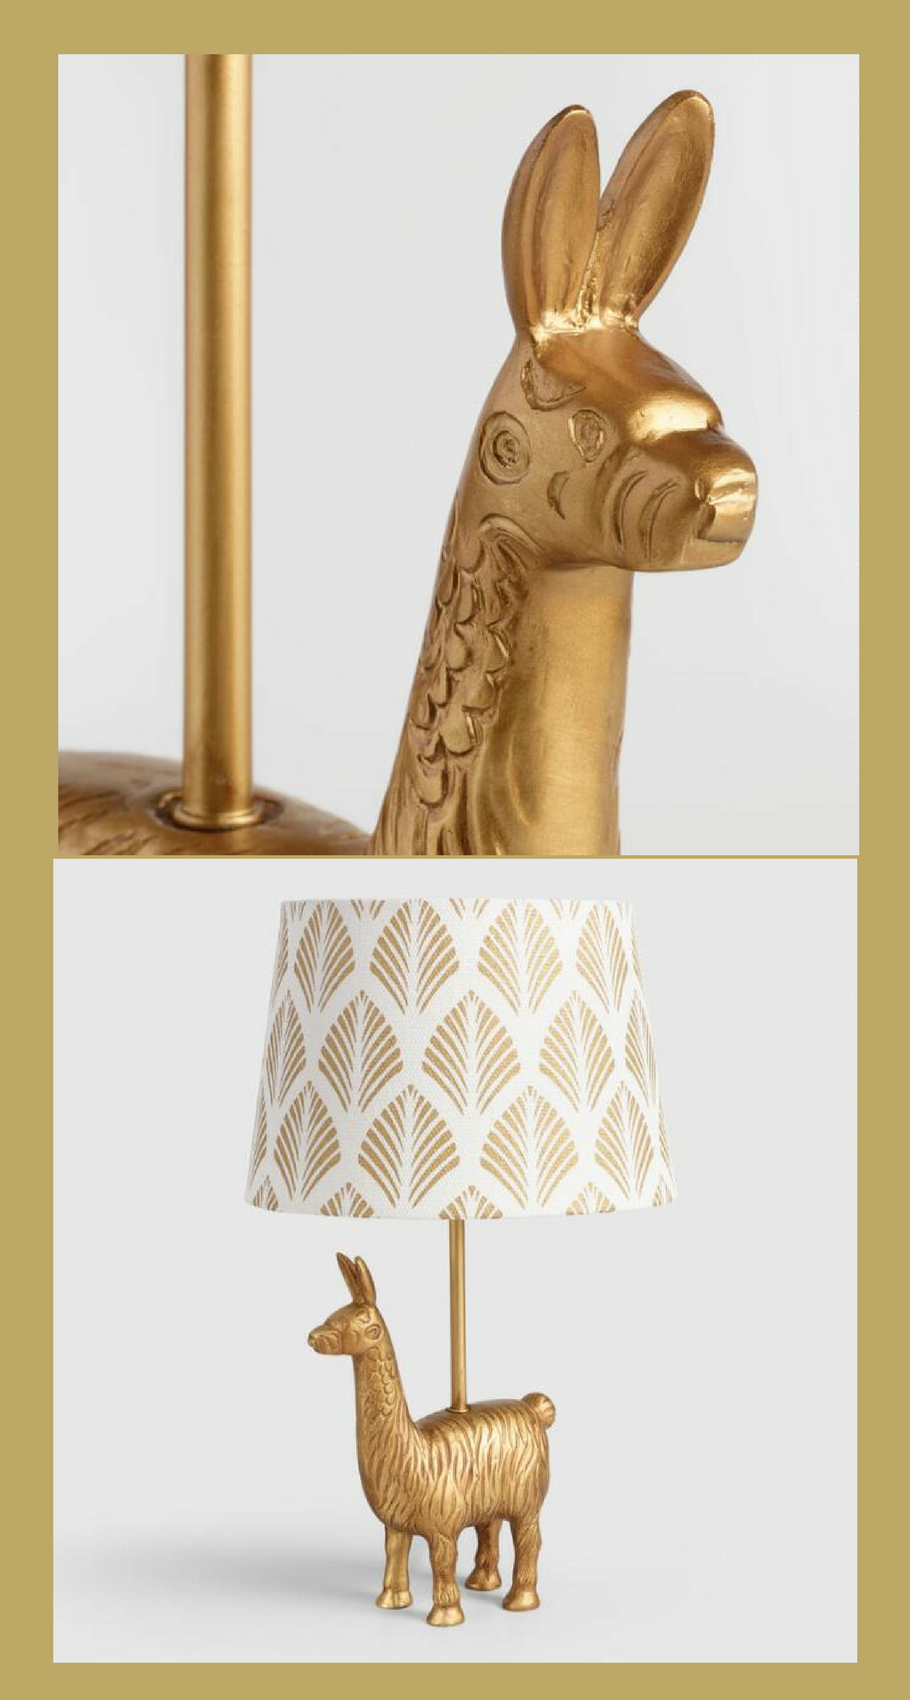 Looking For Your New Favorite Lamp No Prob Llama How About This Gold Llama Whimsical And On